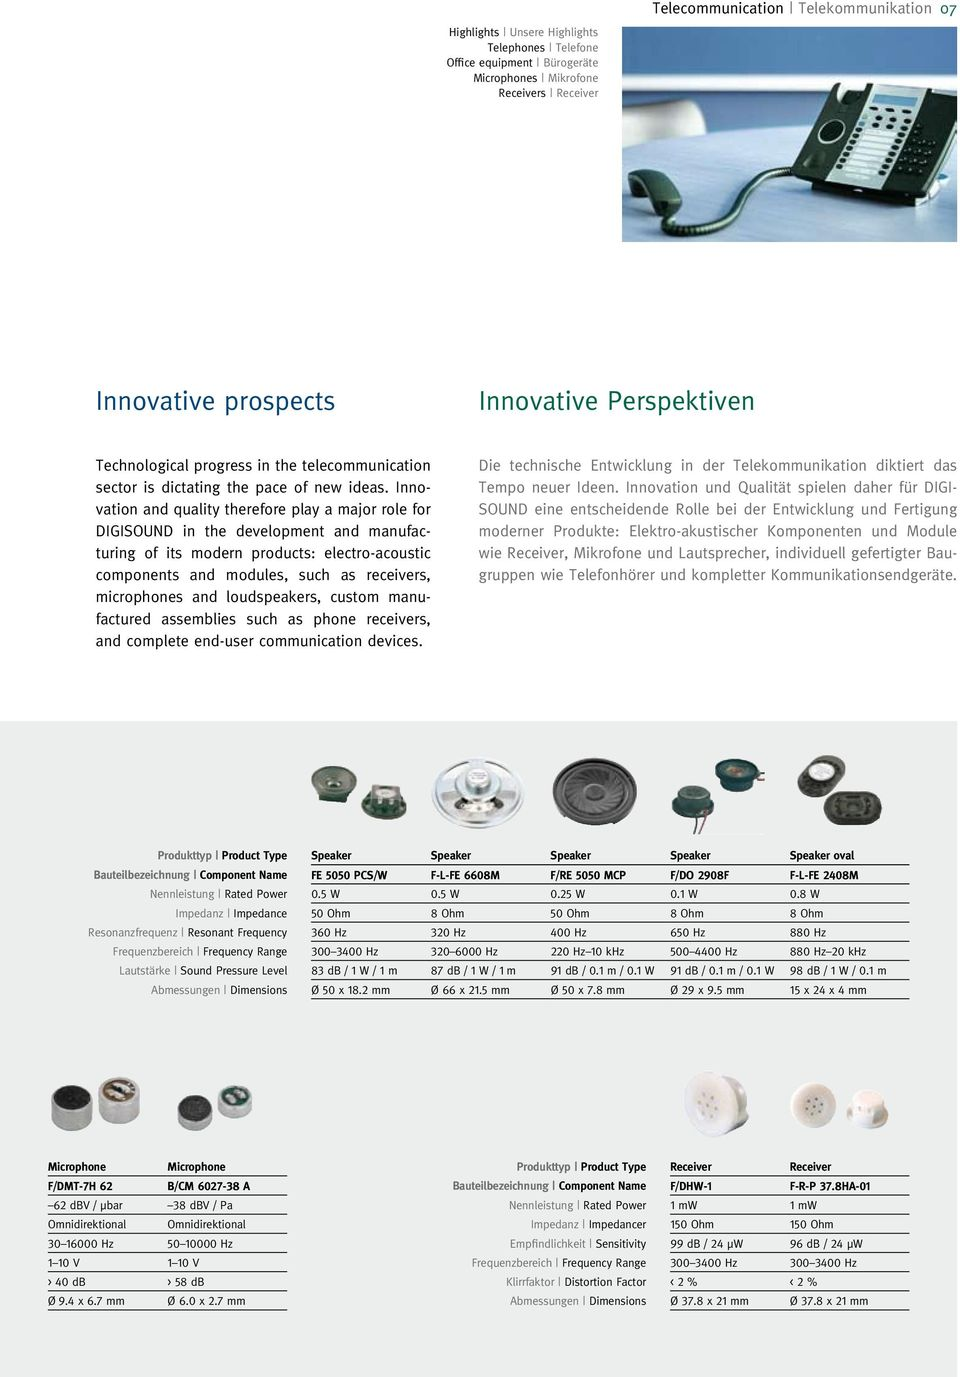 Innovation and quality therefore play a major role for DIGISOUND in the development and manufacturing of its modern products: electro-acoustic components and modules, such as receivers, microphones